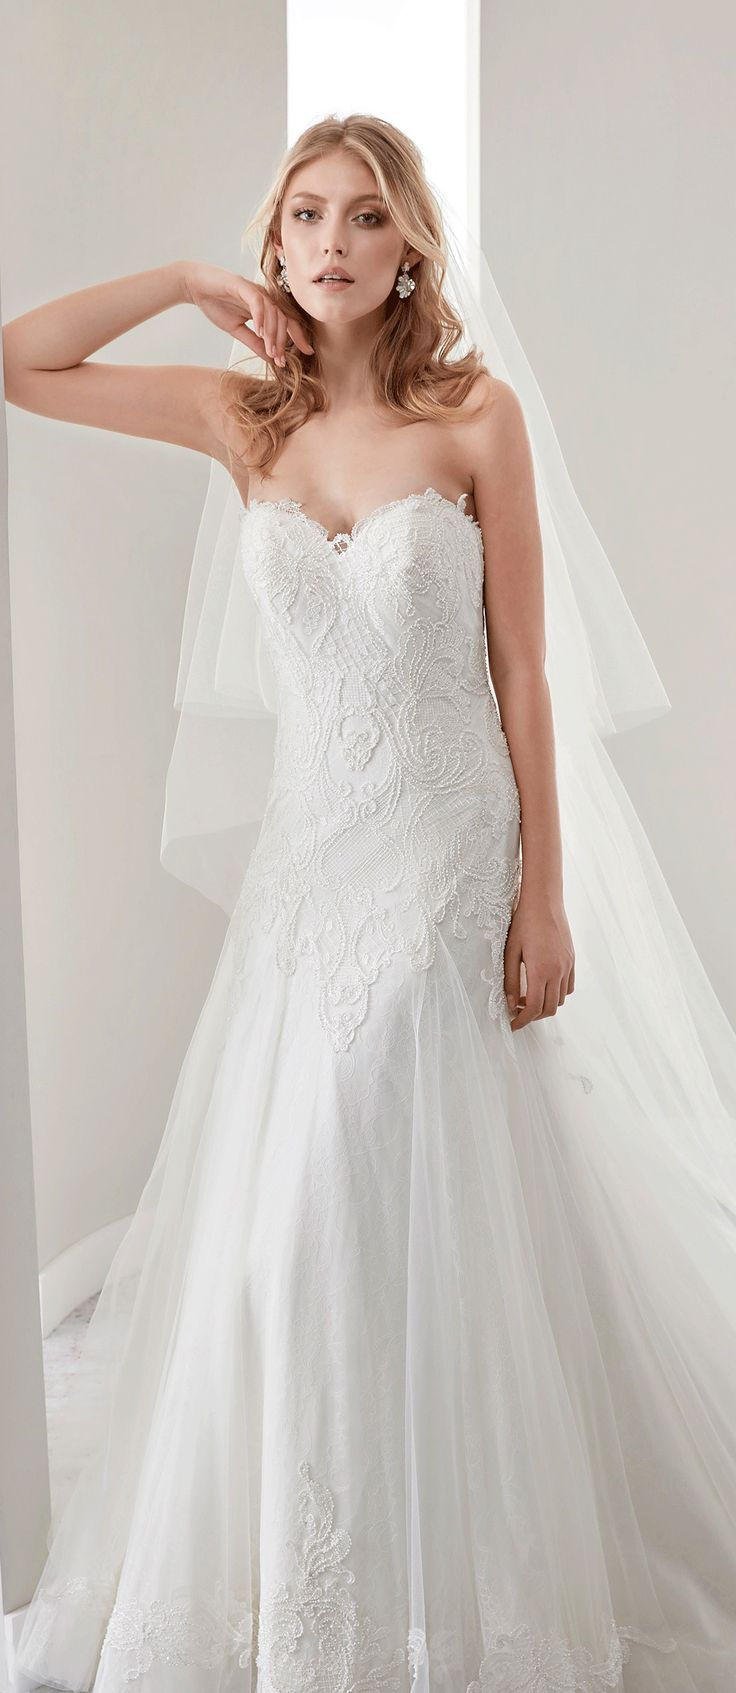 Sweetheart Sheath Lace Gown With Mermaid Style And Appliques